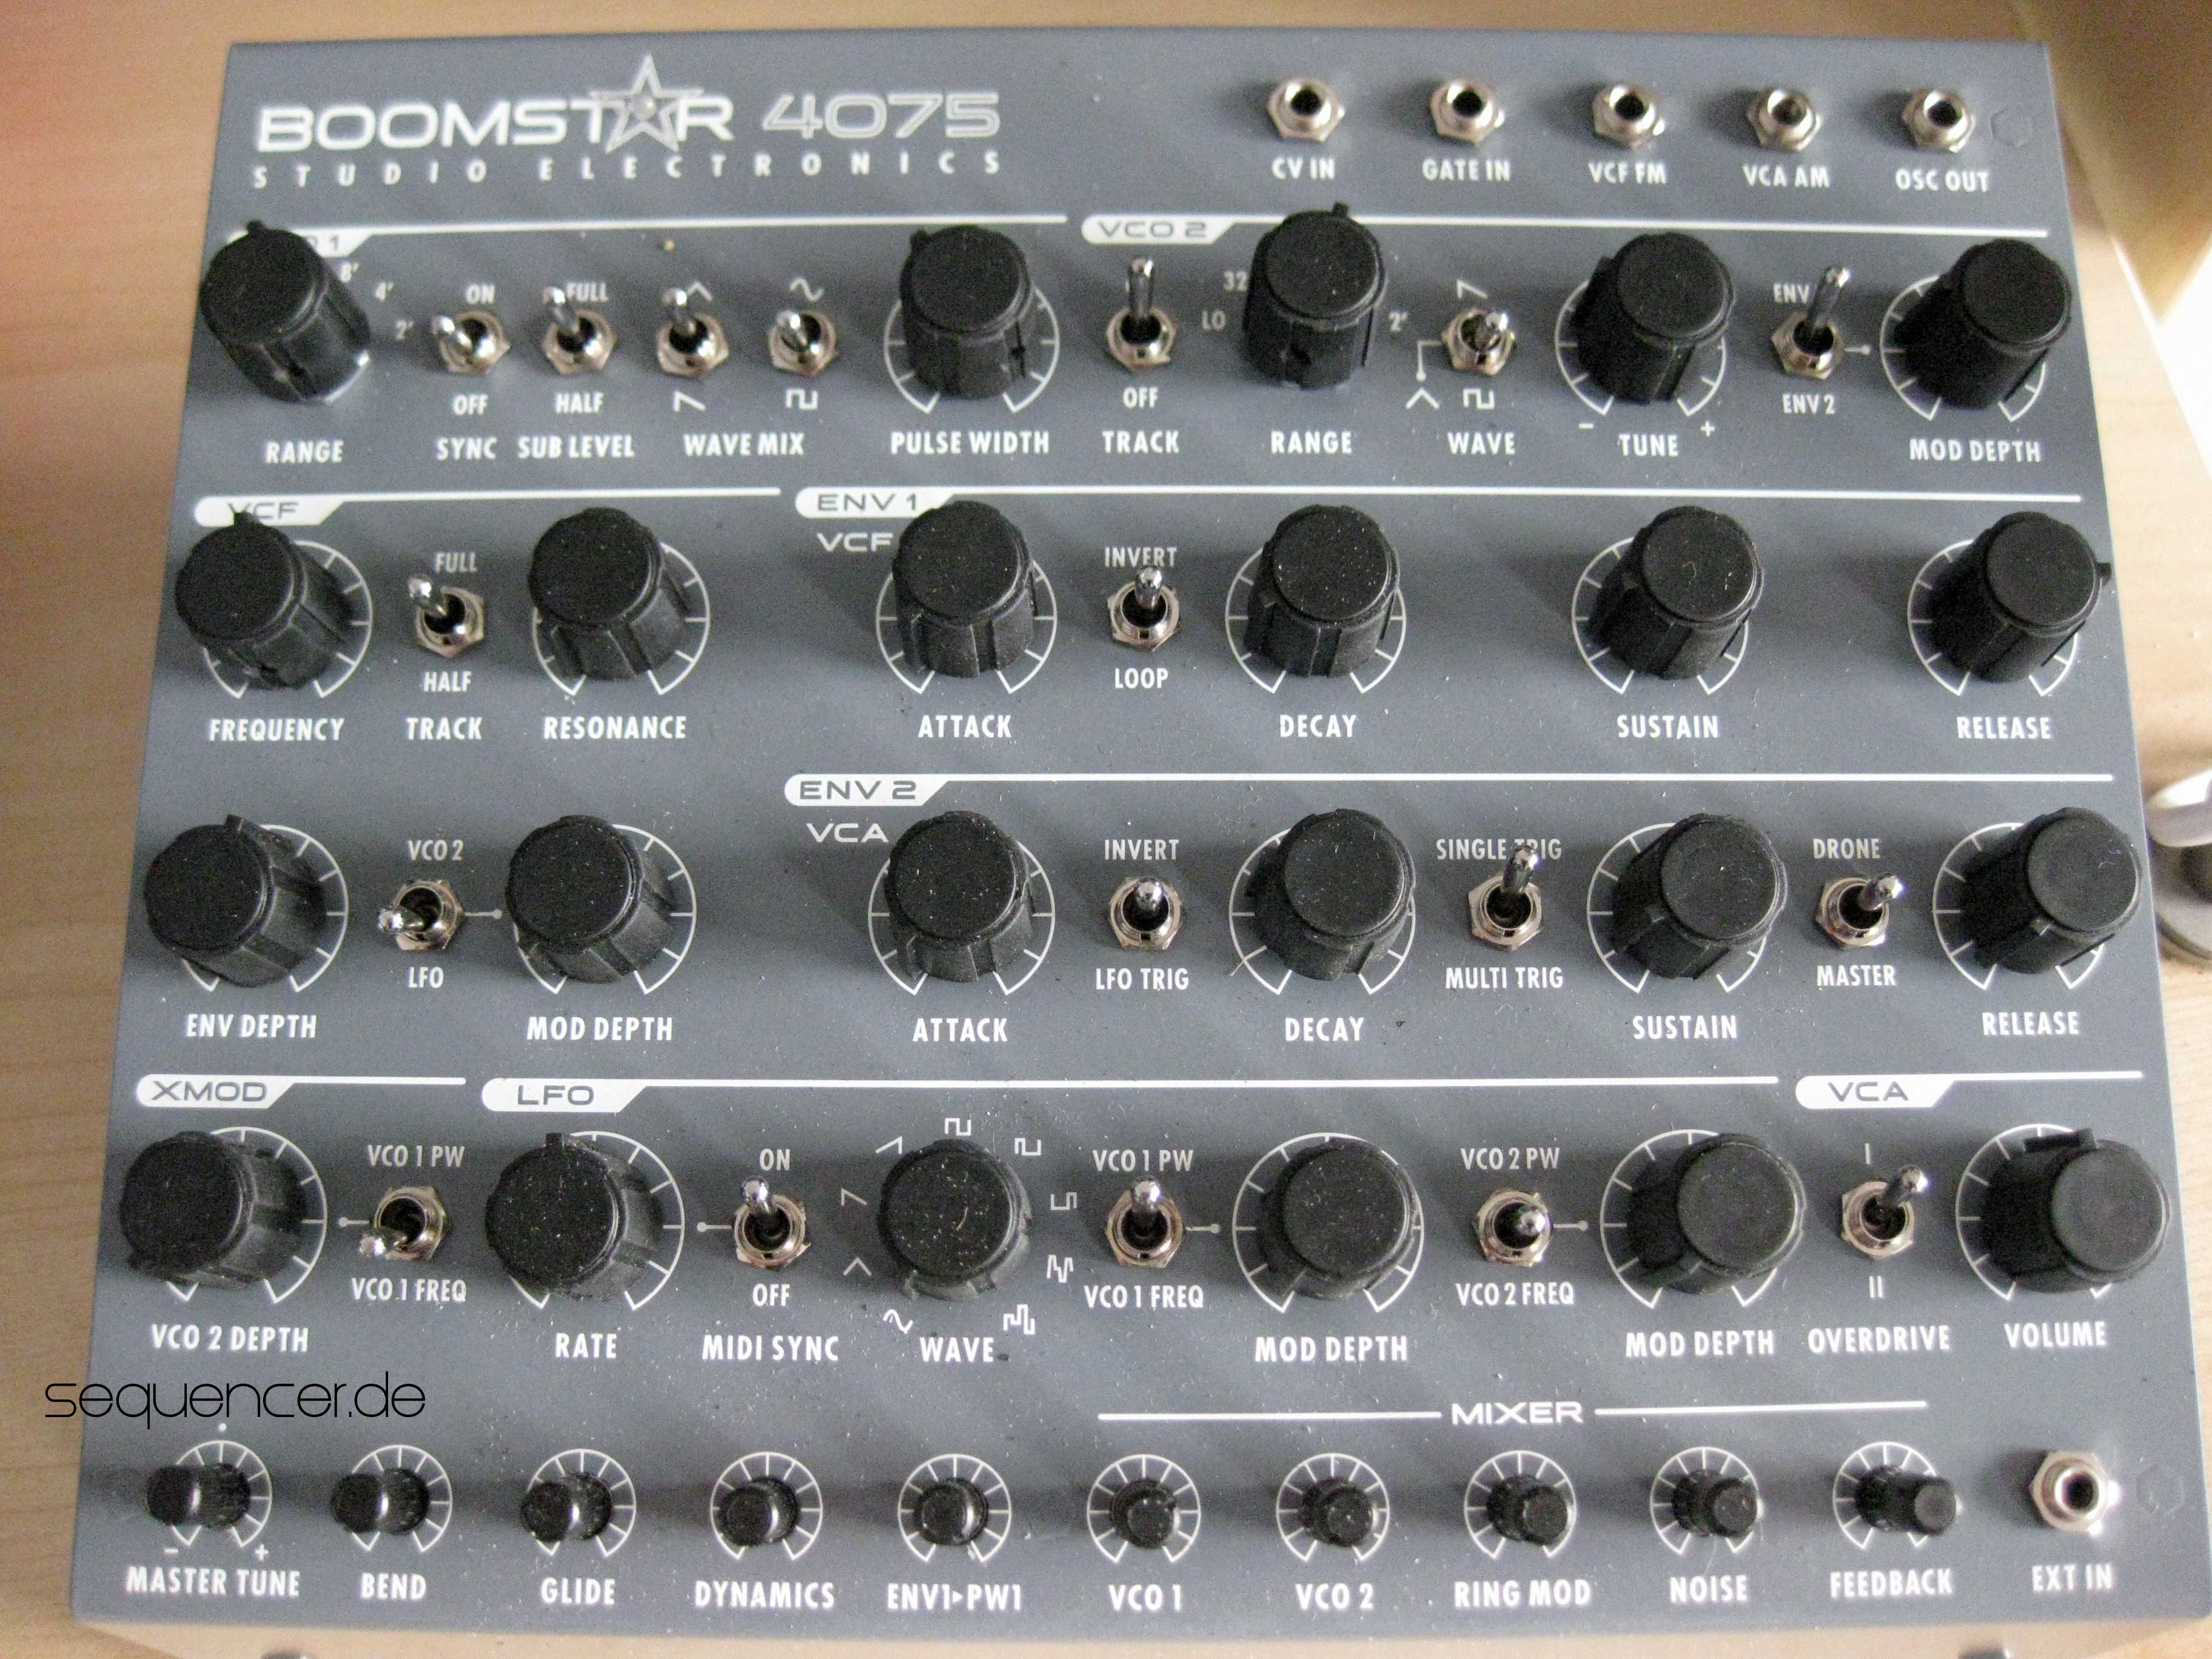 Studio Electronics Boomstar3003 Boomstar4075 Boomstar5089 synthesizer